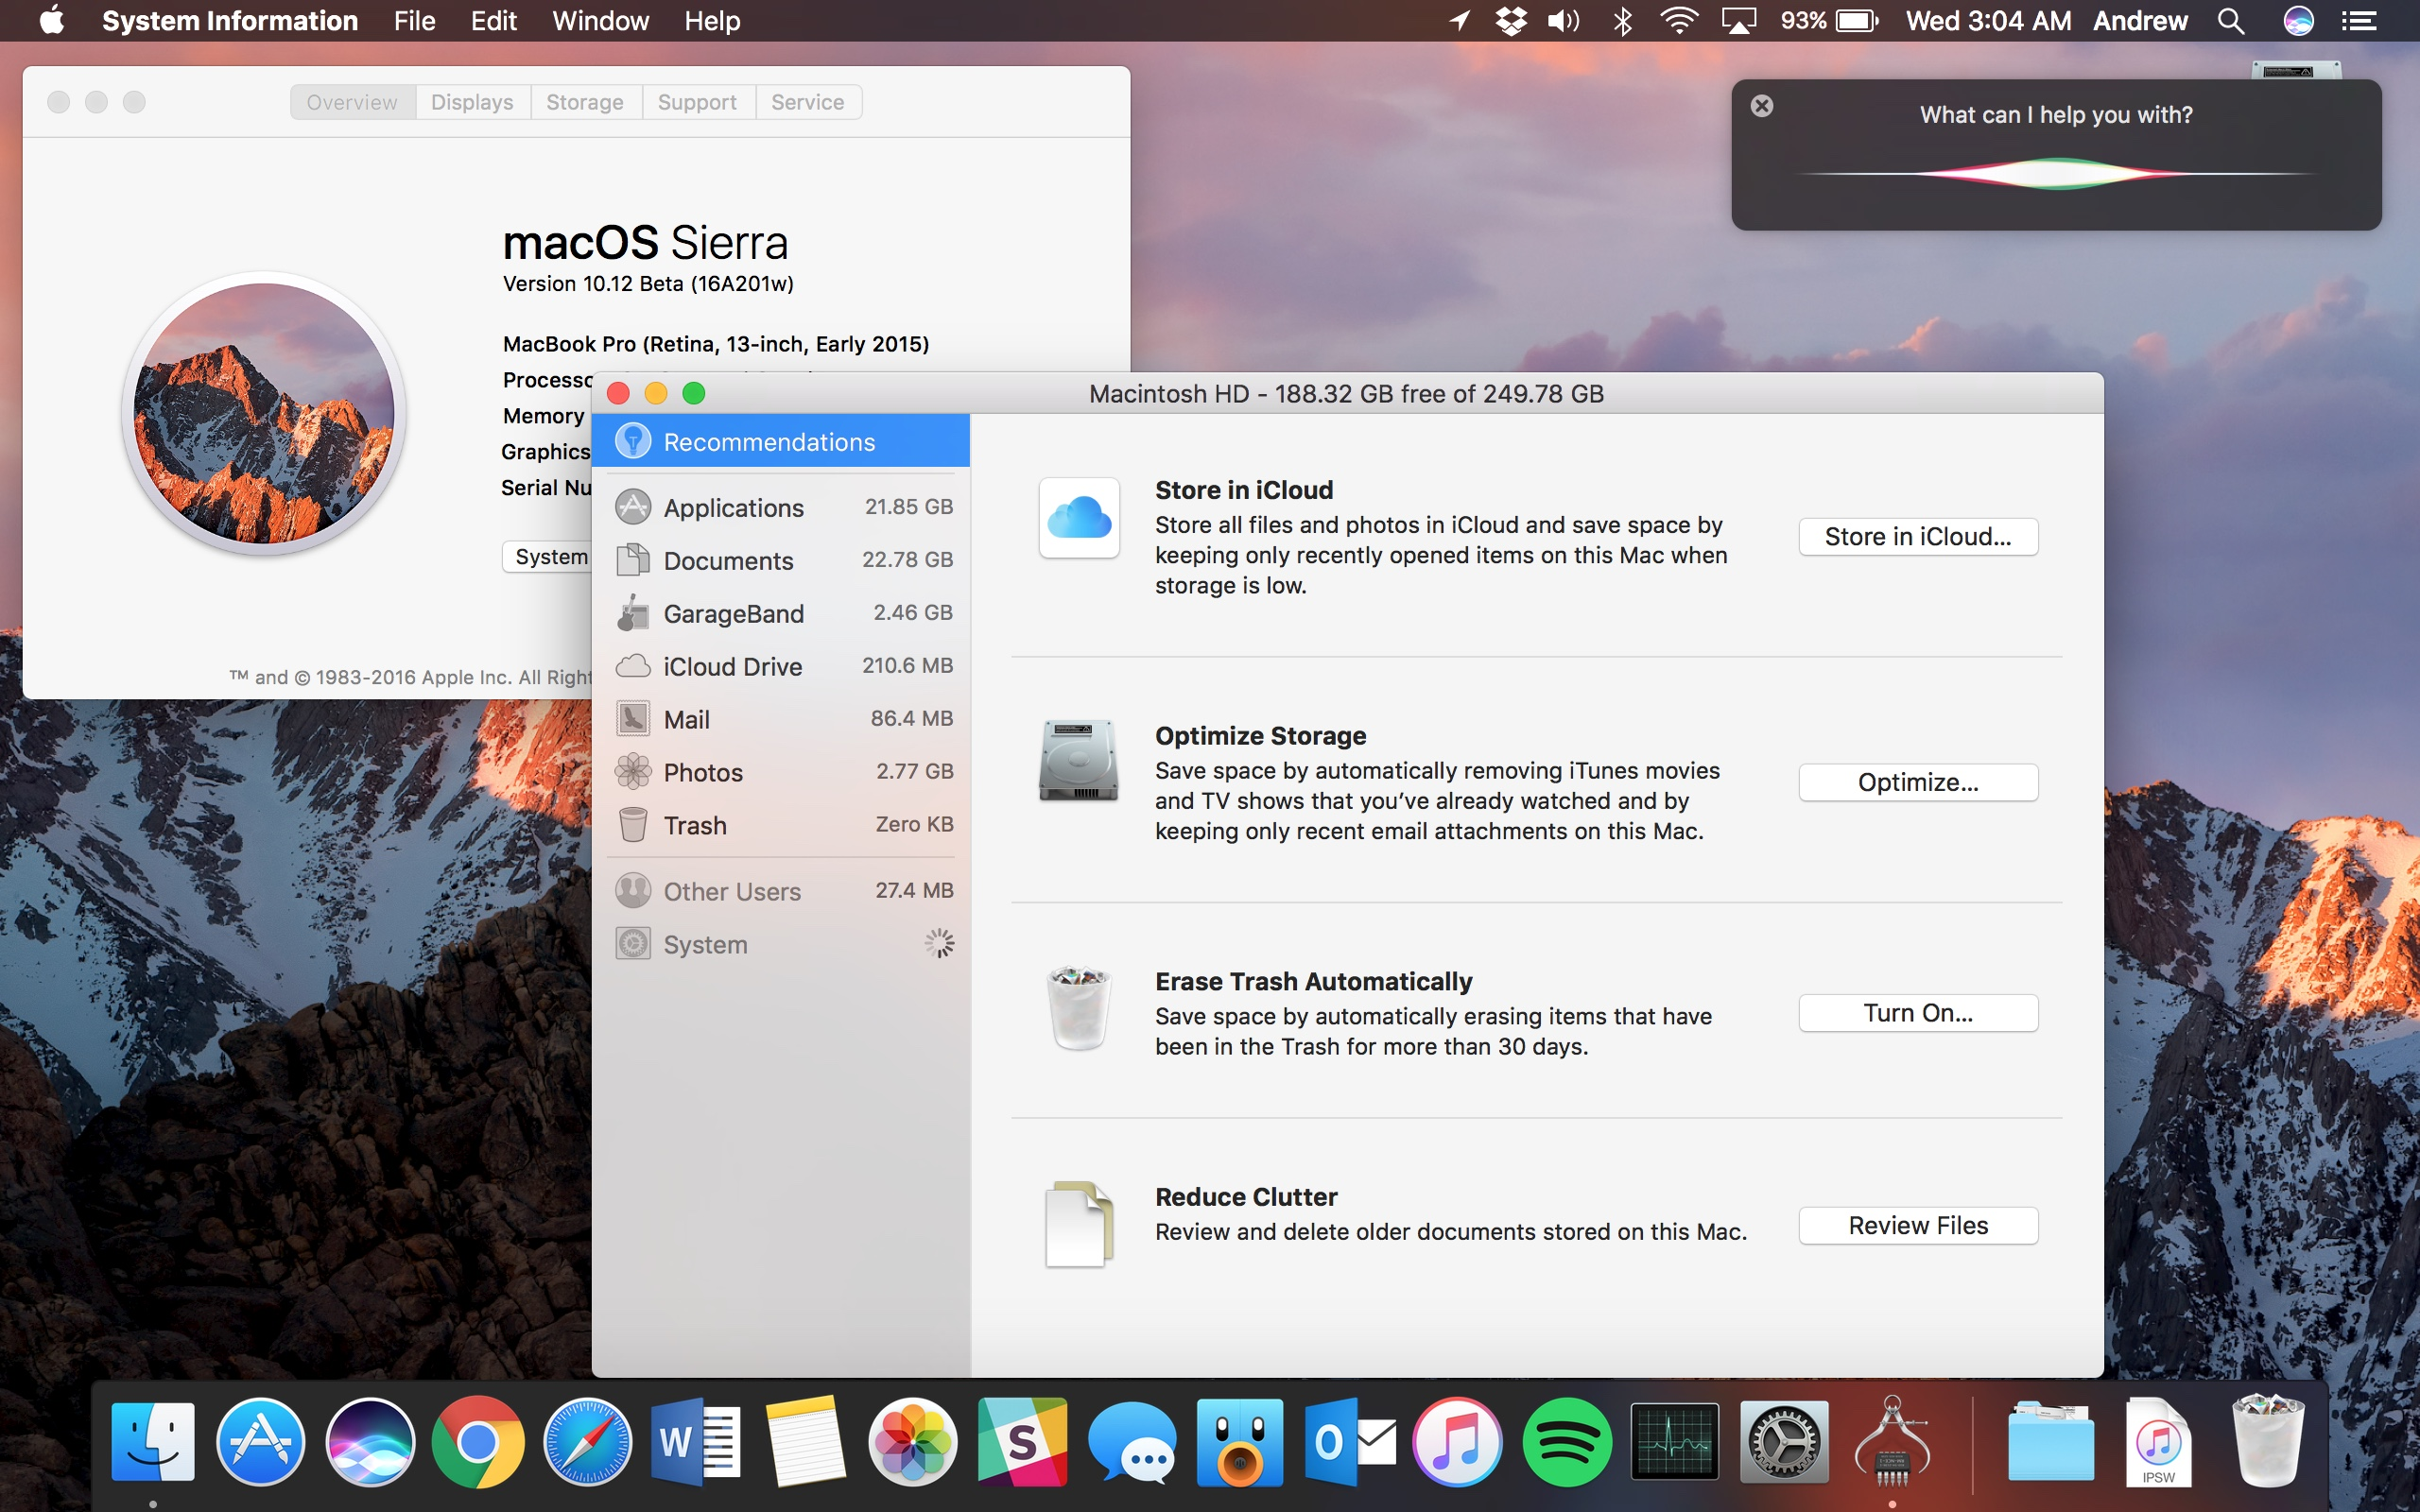 macOS Sierra's first beta. The software is nearing the end of its beta cycle.